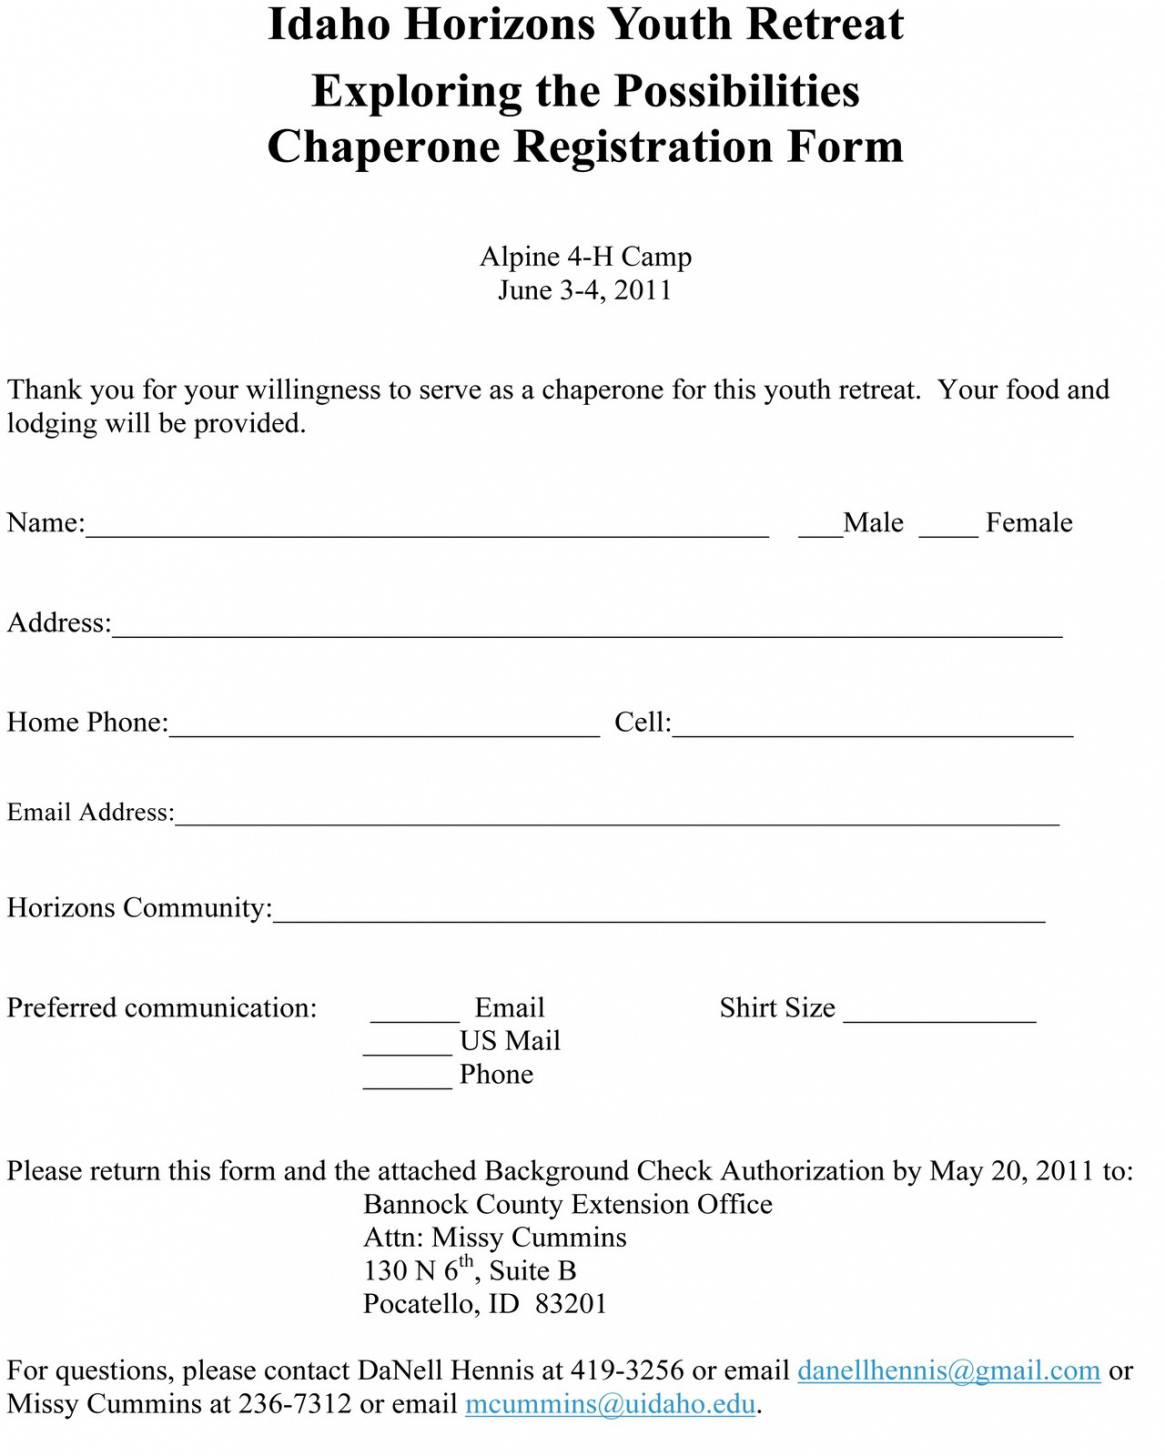 free ririe coalition for community development ryac youth youth retreat registration form template doc